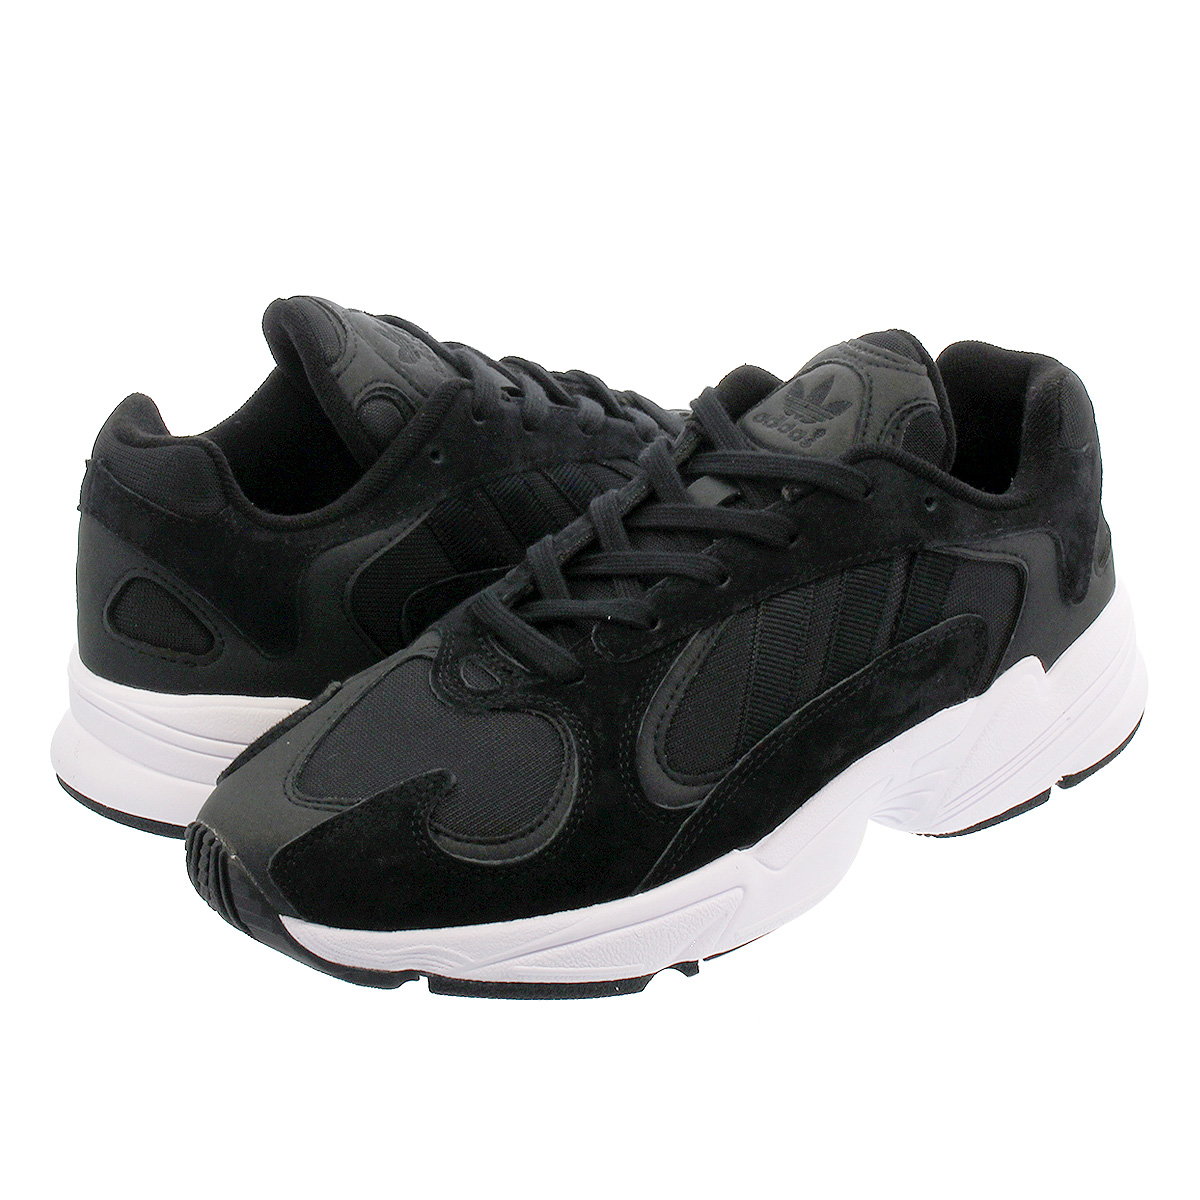 【お買い物マラソンSALE】 adidas YUNG-1 【adidas Originals】 アディダス ヤング 1 CORE BLACK/CORE BLACK/RUNNING WHITE cg7121